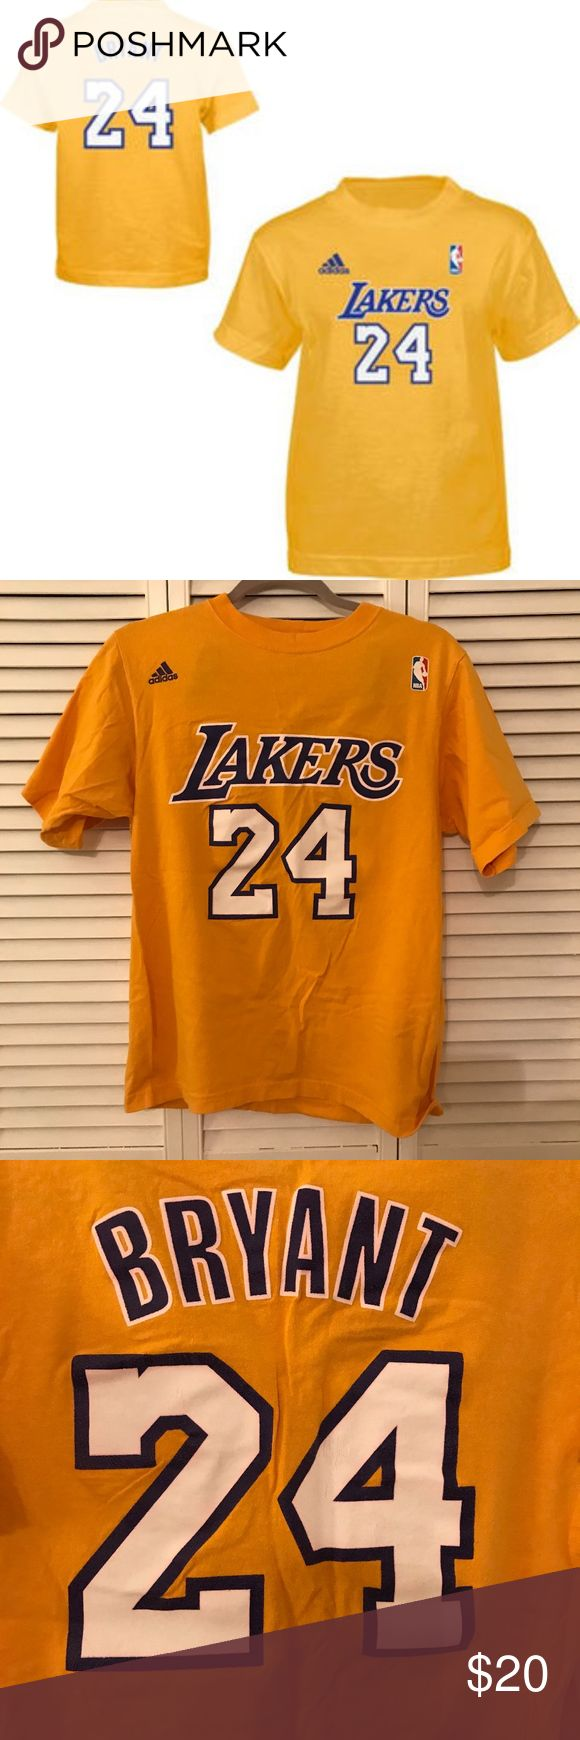 Kobe Bryant Laker's T-Shirt Adorable and classic Kobe Bryant LA Lakers T-shirt! Has been worn a handful of times,  but still has lots of life in it and is in great condition! While the shirt looks wrinkled in the pics, it will be steamed before it is shipped out! Please feel free to ask questions! :) adidas Tops Tees - Short Sleeve